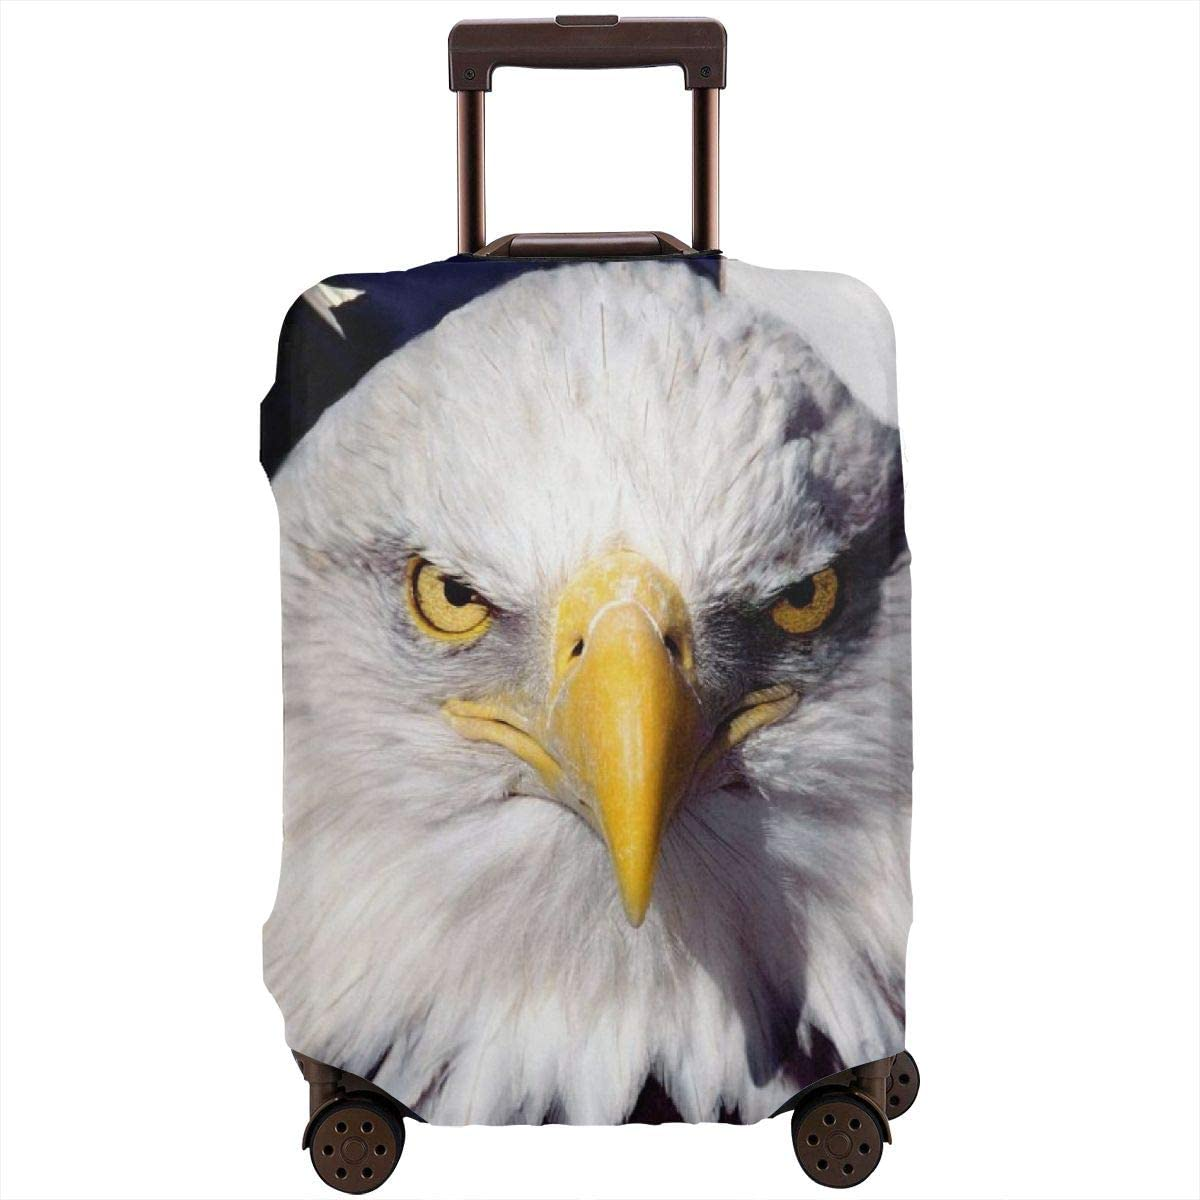 Travel Luggage Cover Spandex Suitcase Protective Cover Washable Baggage Carry on Protector Size XL L M S Bald Eagle American Flag XL